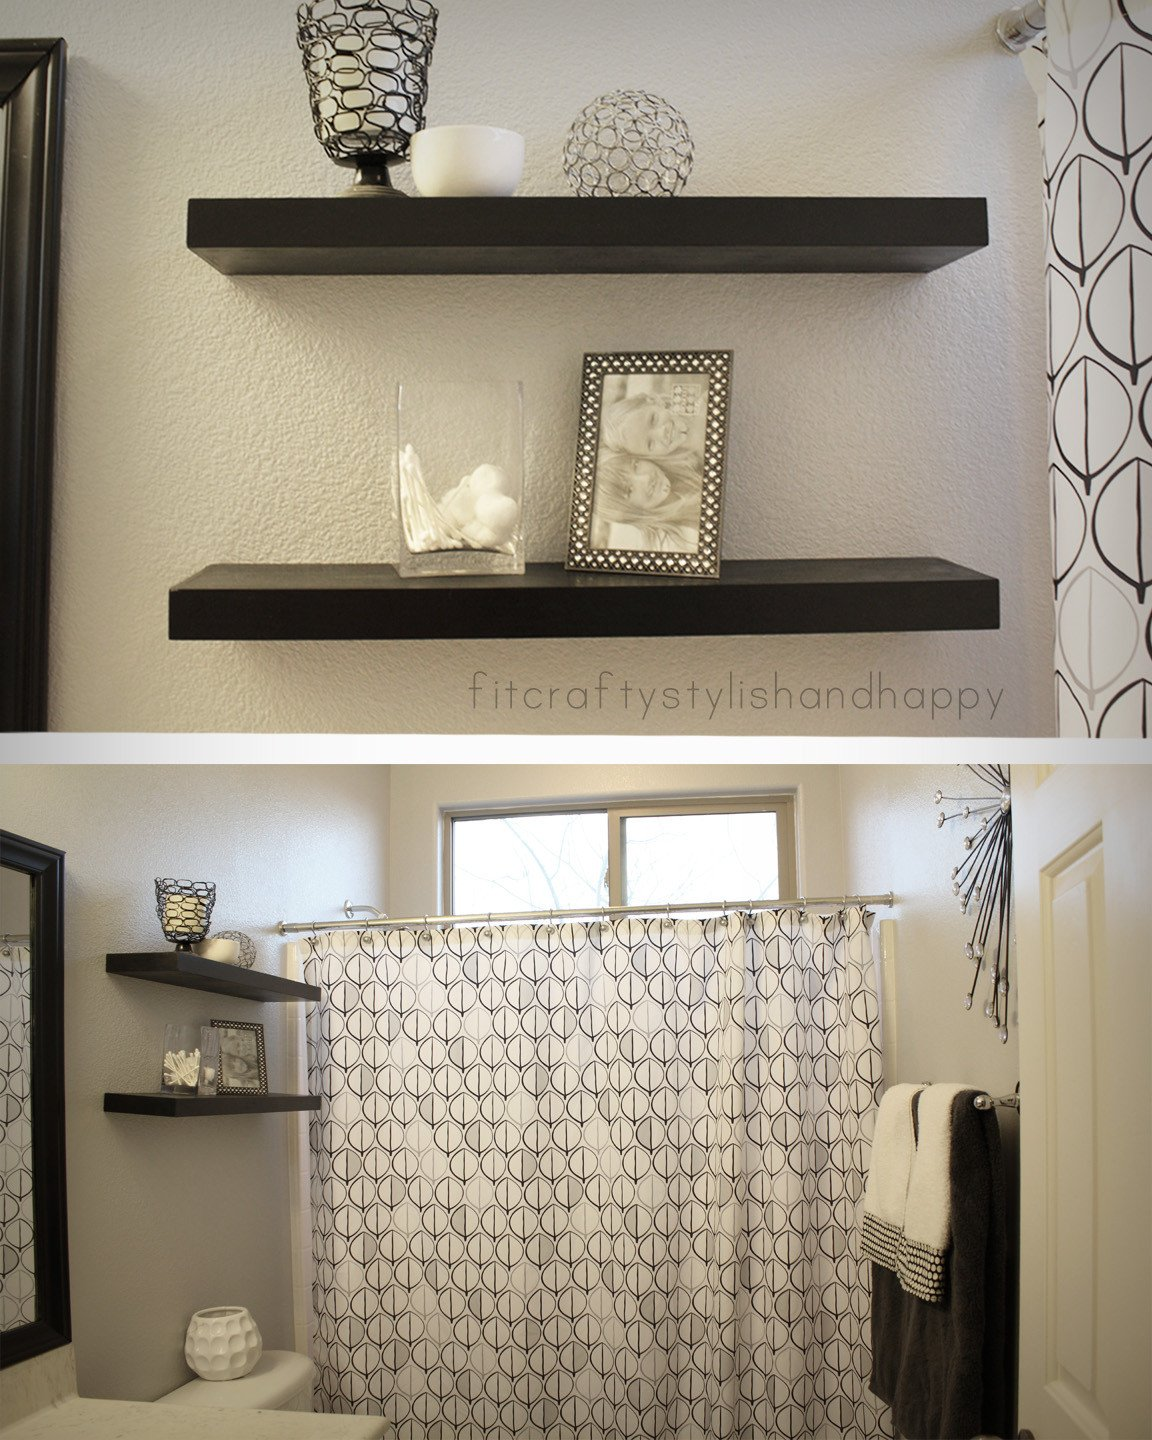 Black and Grey Bathroom Decor Luxury Grey Black and White Bathrooms 2017 Grasscloth Wallpaper